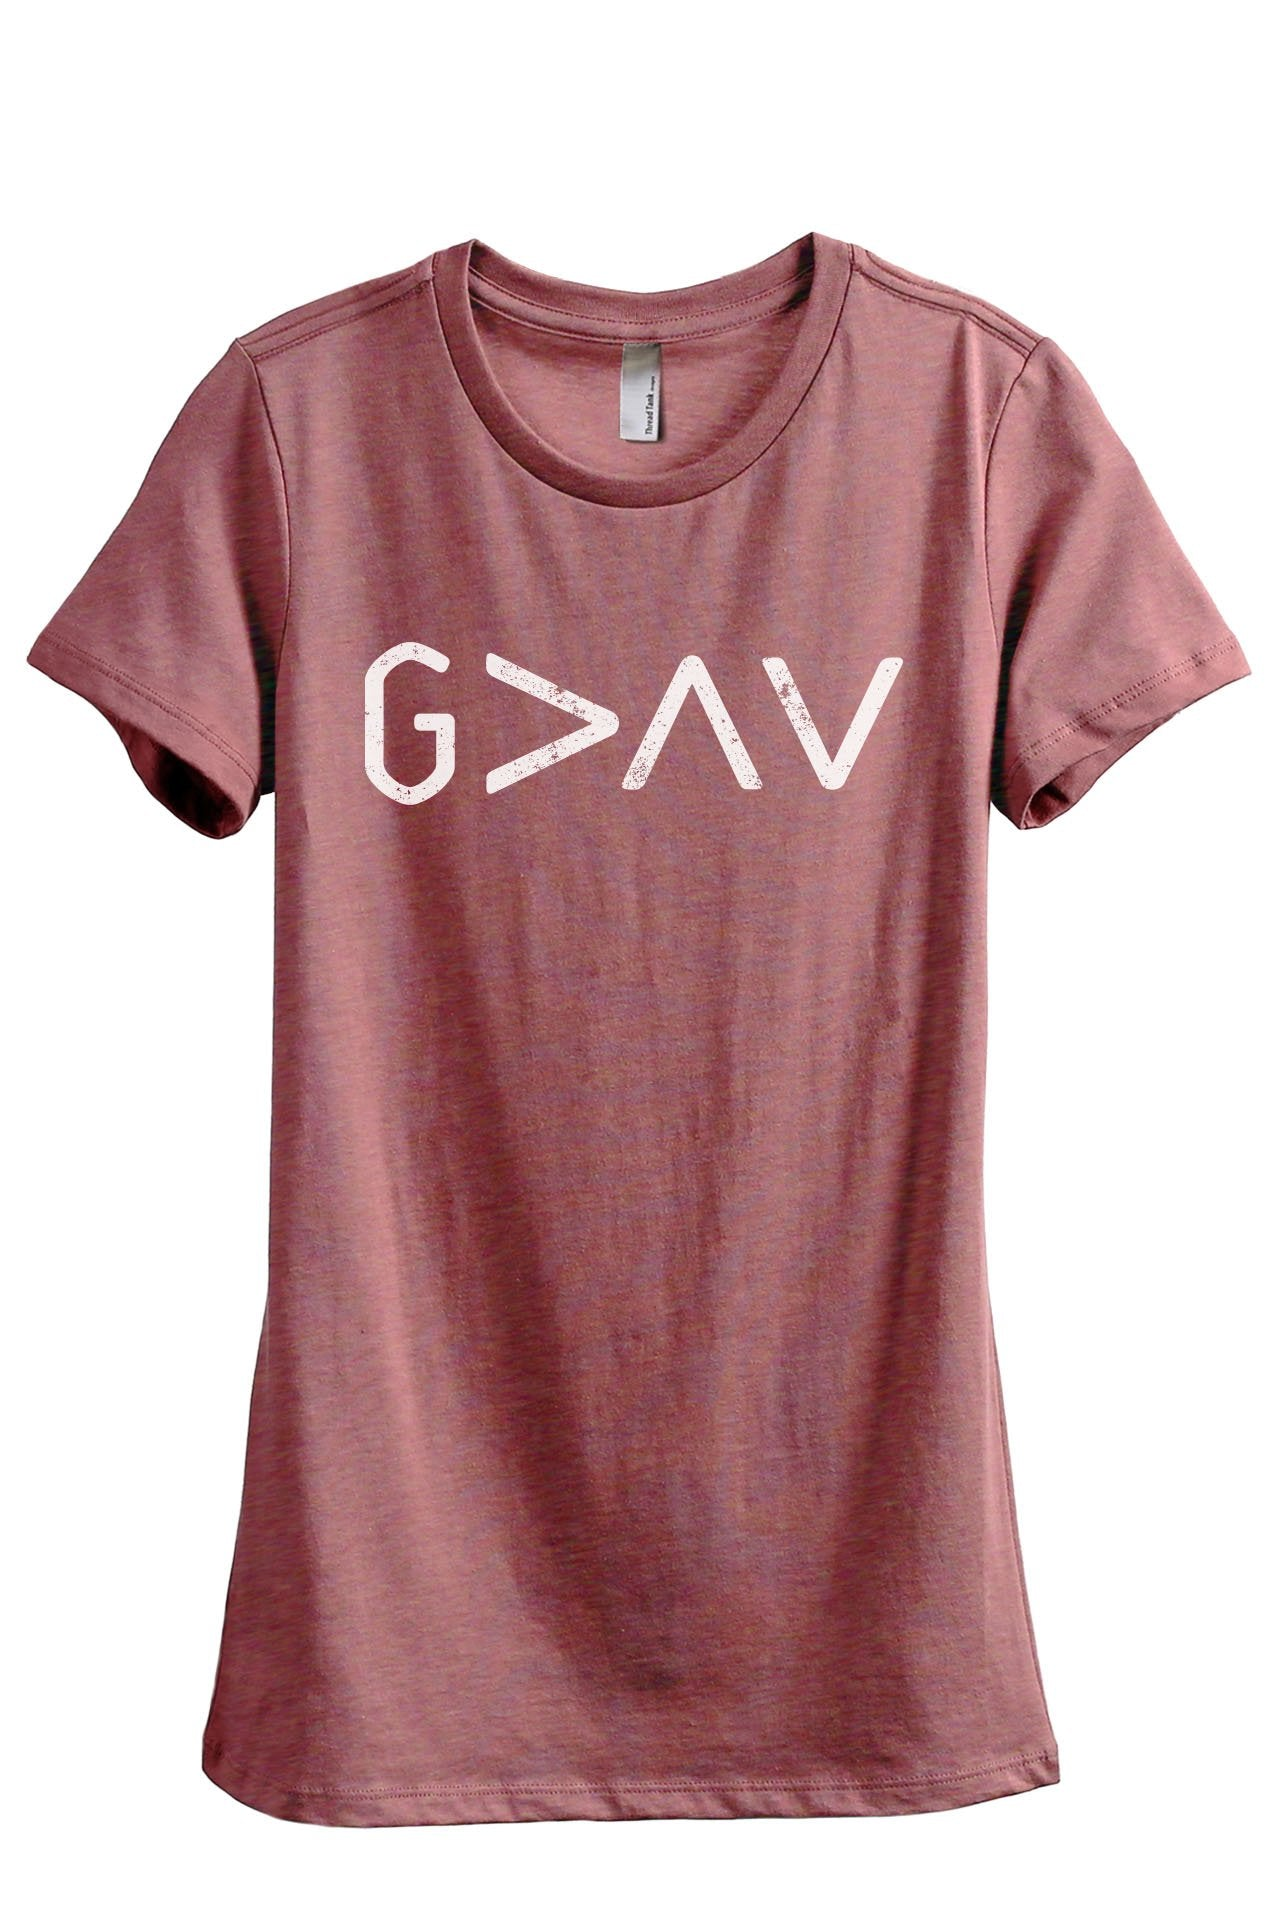 God Is Greater Than The Highs And Lows - Thread Tank | Stories You Can Wear | T-Shirts, Tank Tops and Sweatshirts